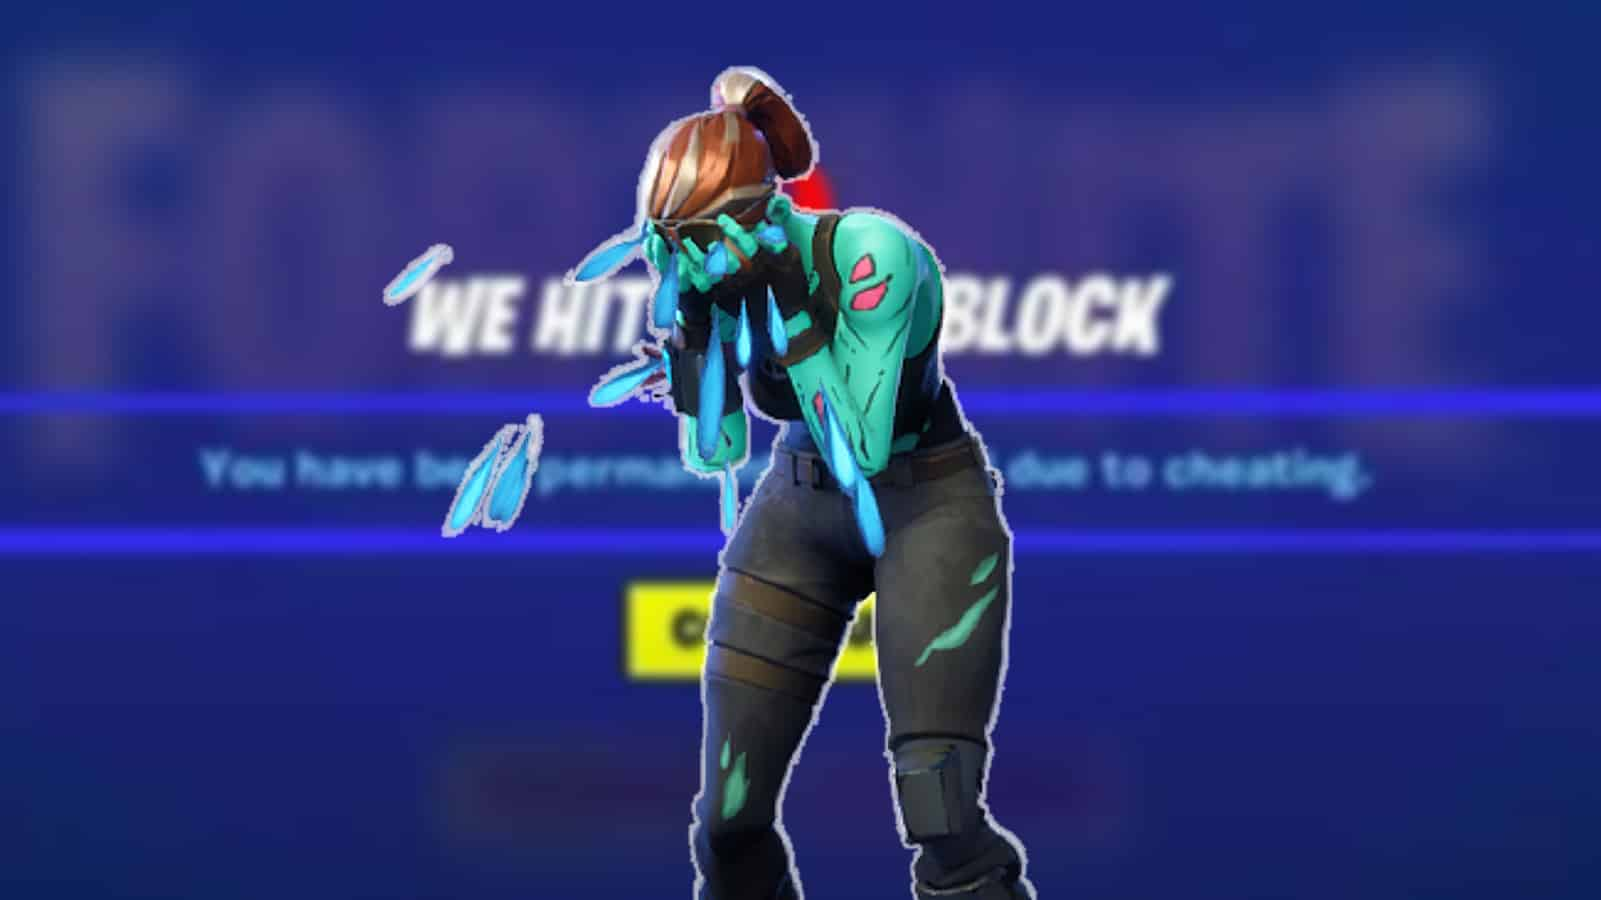 Fornite character crying in front of permaban screen